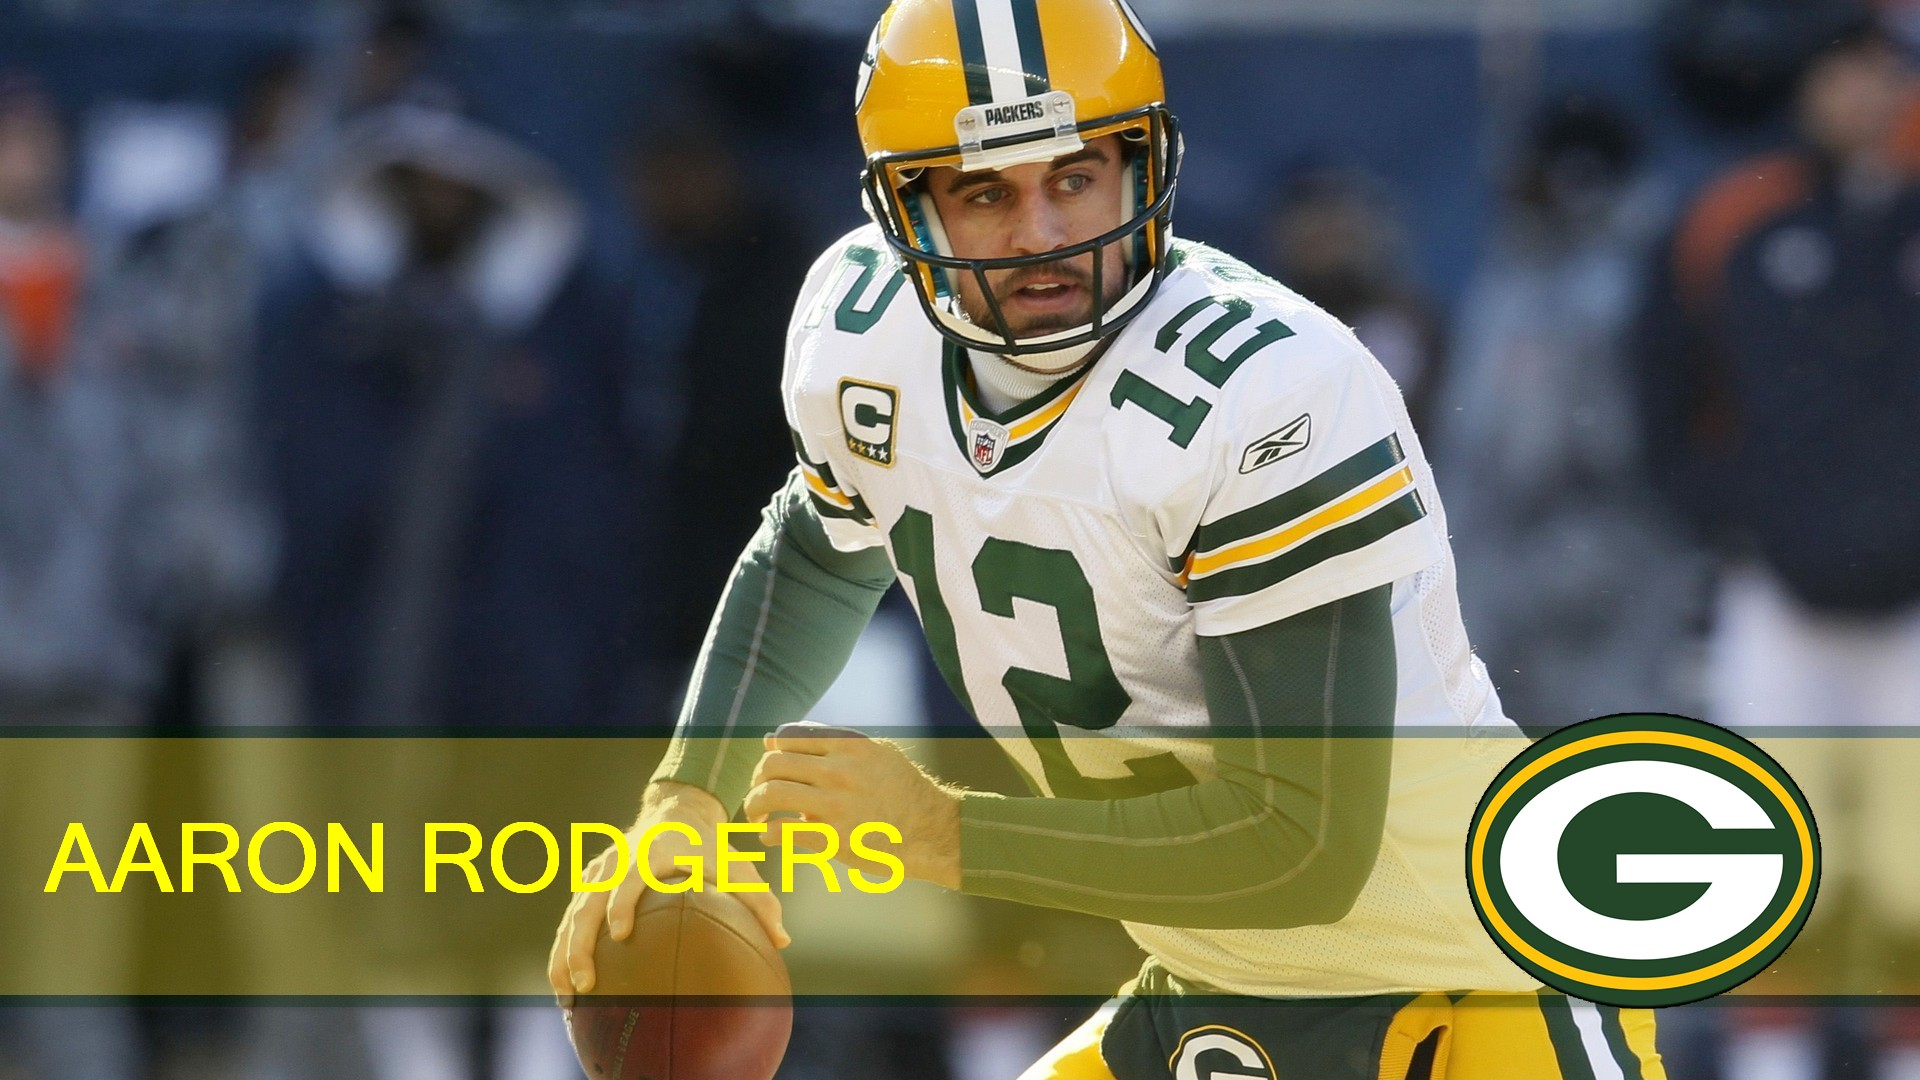 aaron rodgers photos wallpaper high definition high